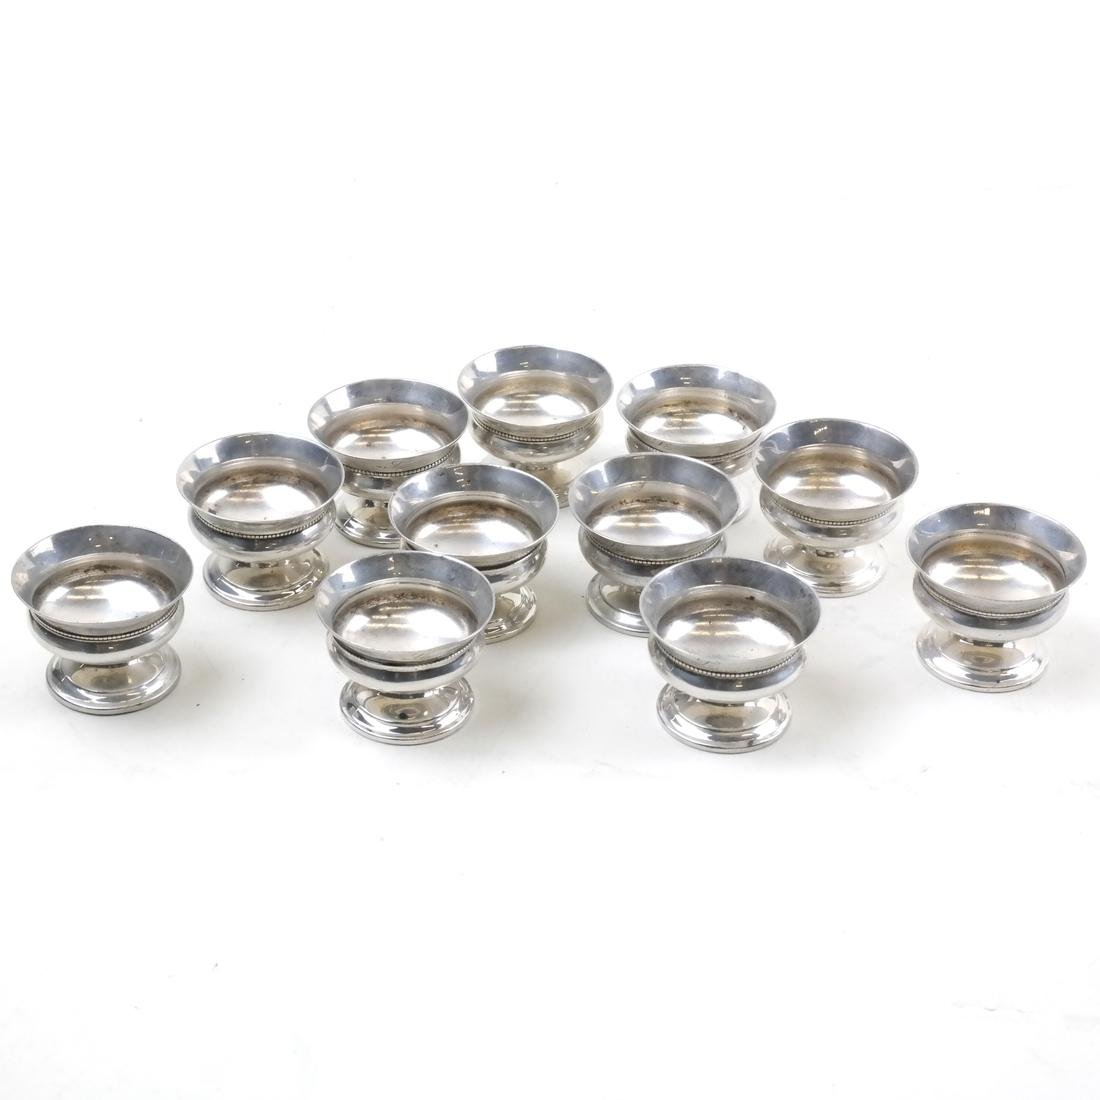 Set of 11 Whiting Mfg. Co. Sterling Individual Salts